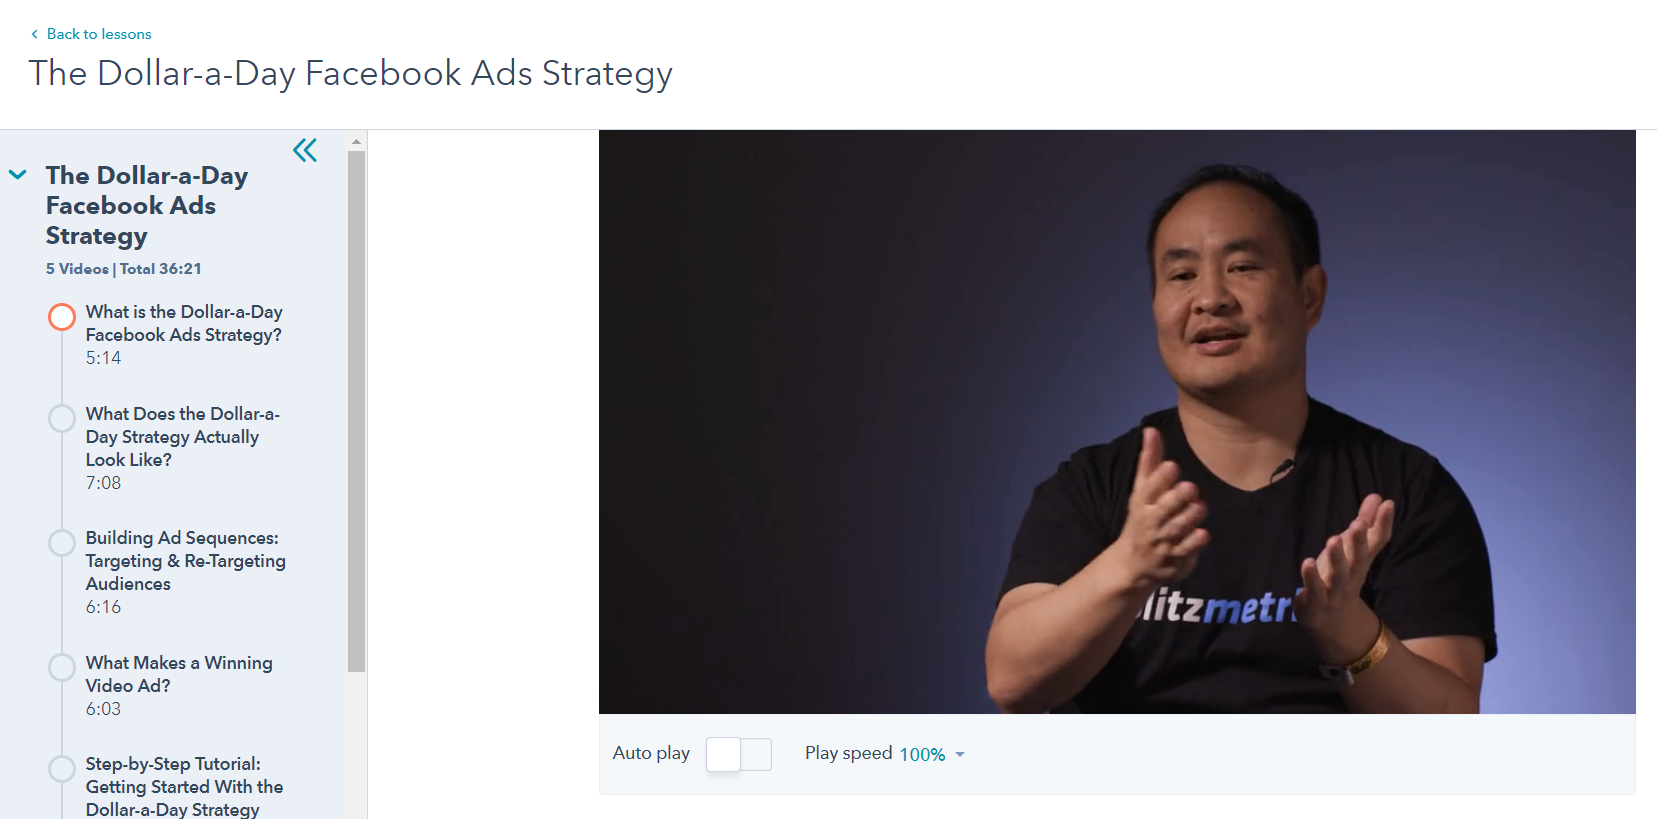 Facebook Ads Training: How to Build Great Ads & Audiences